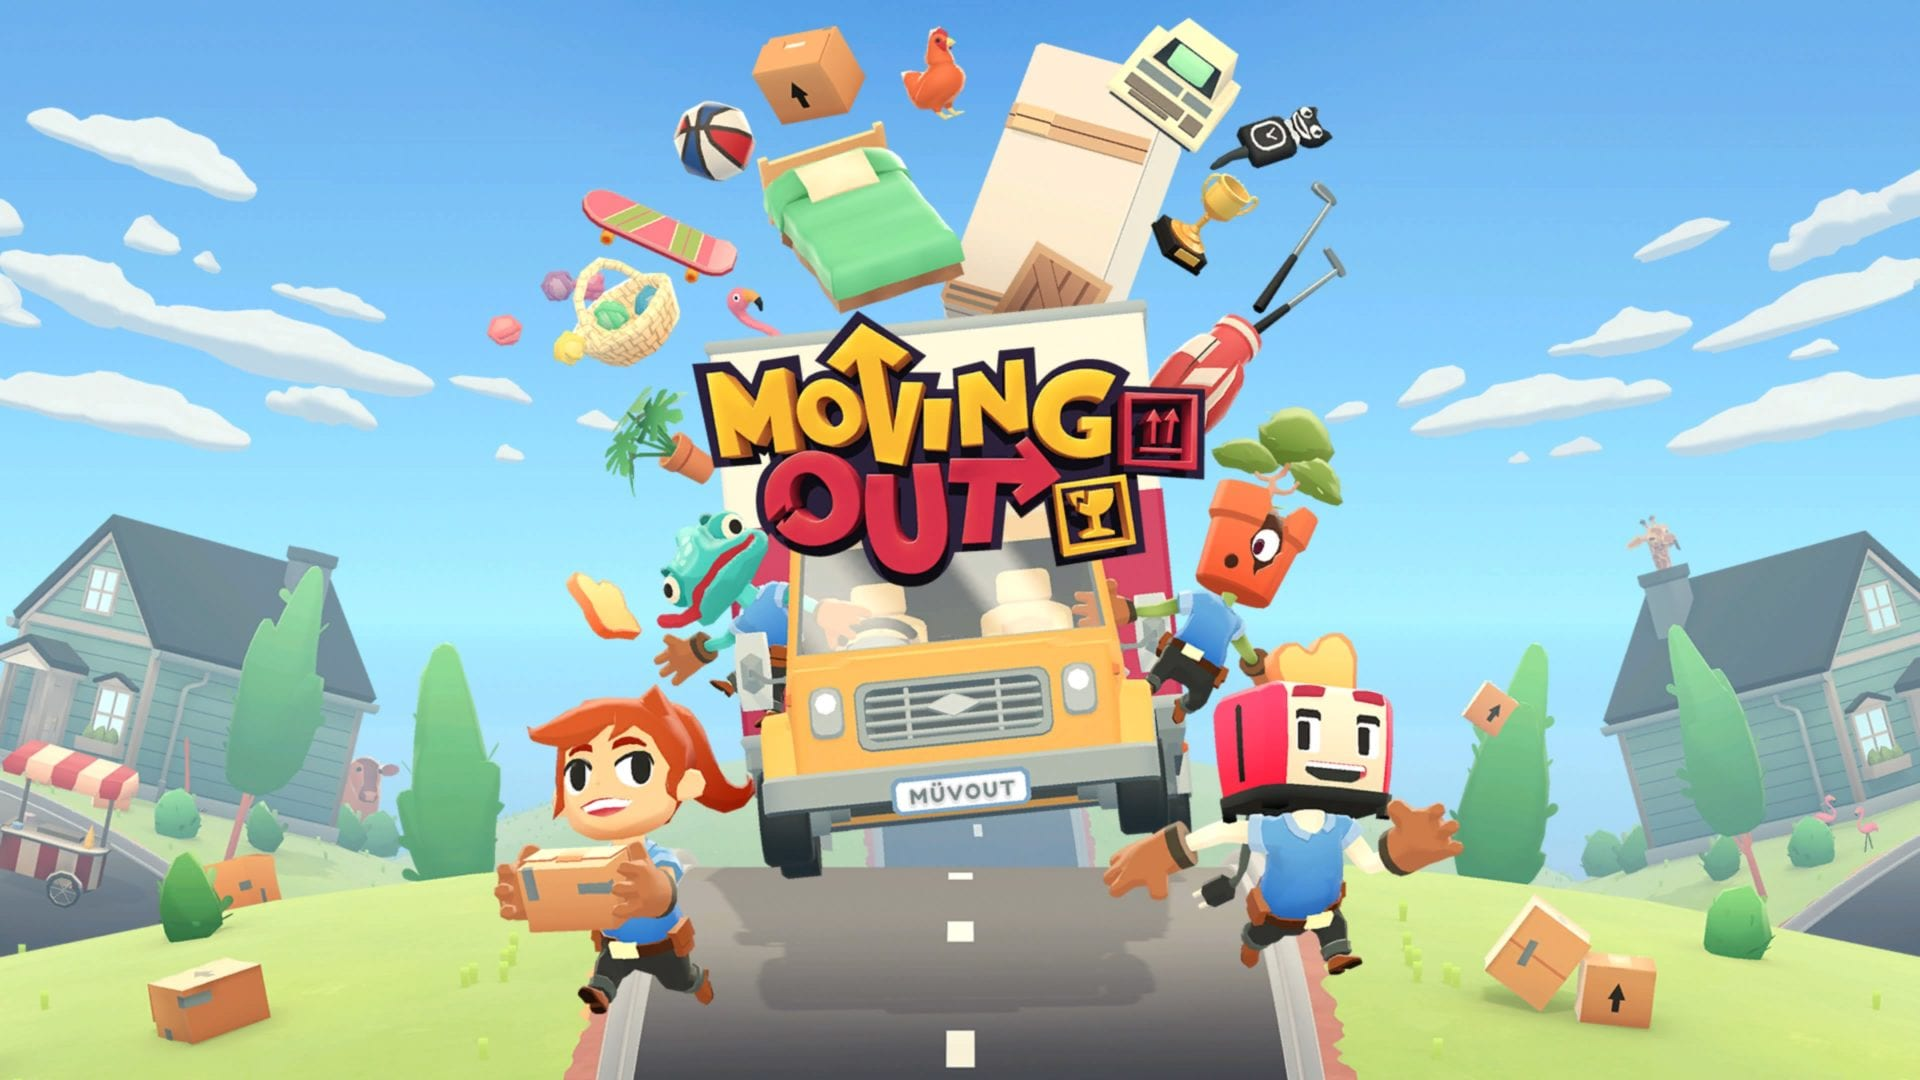 Moving Out, online multiplayer